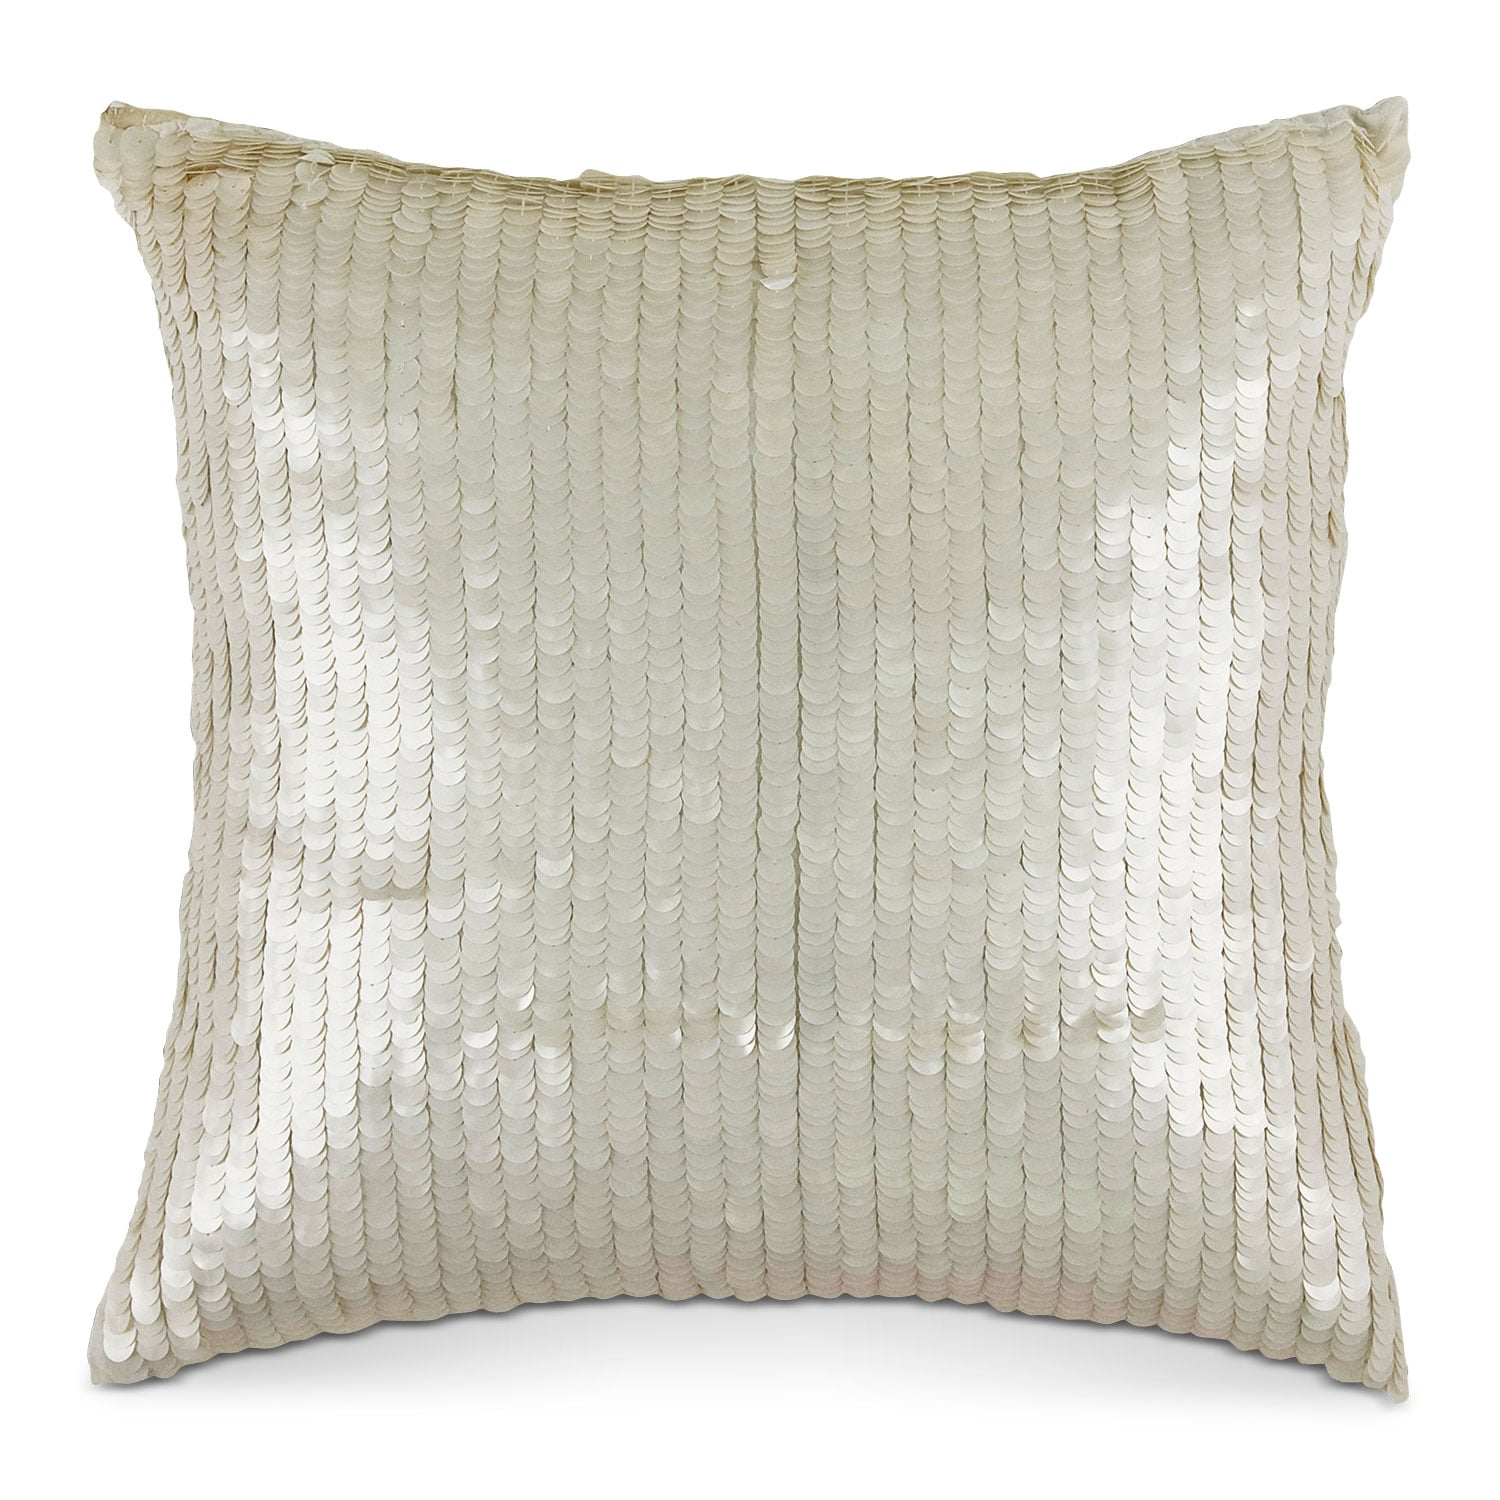 Paz Decorative Pillow